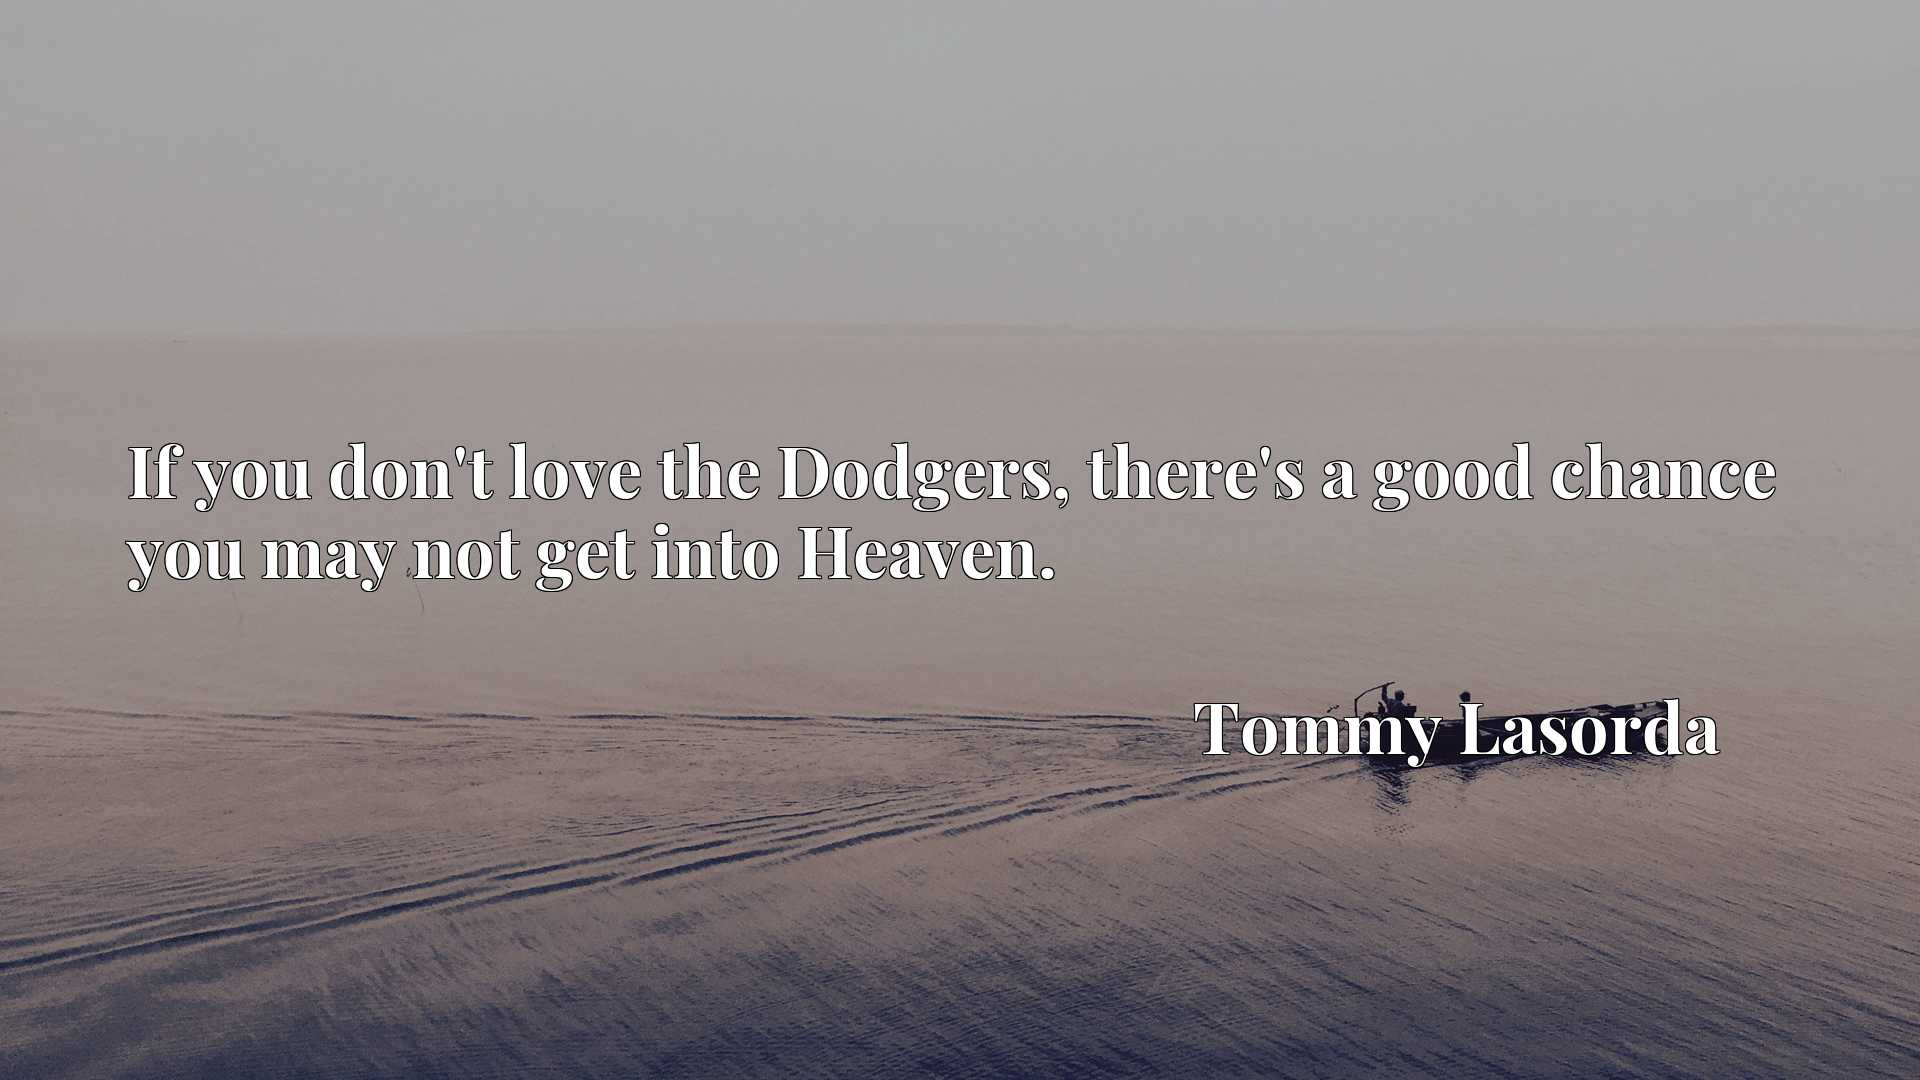 Quote Picture :If you don't love the Dodgers, there's a good chance you may not get into Heaven.